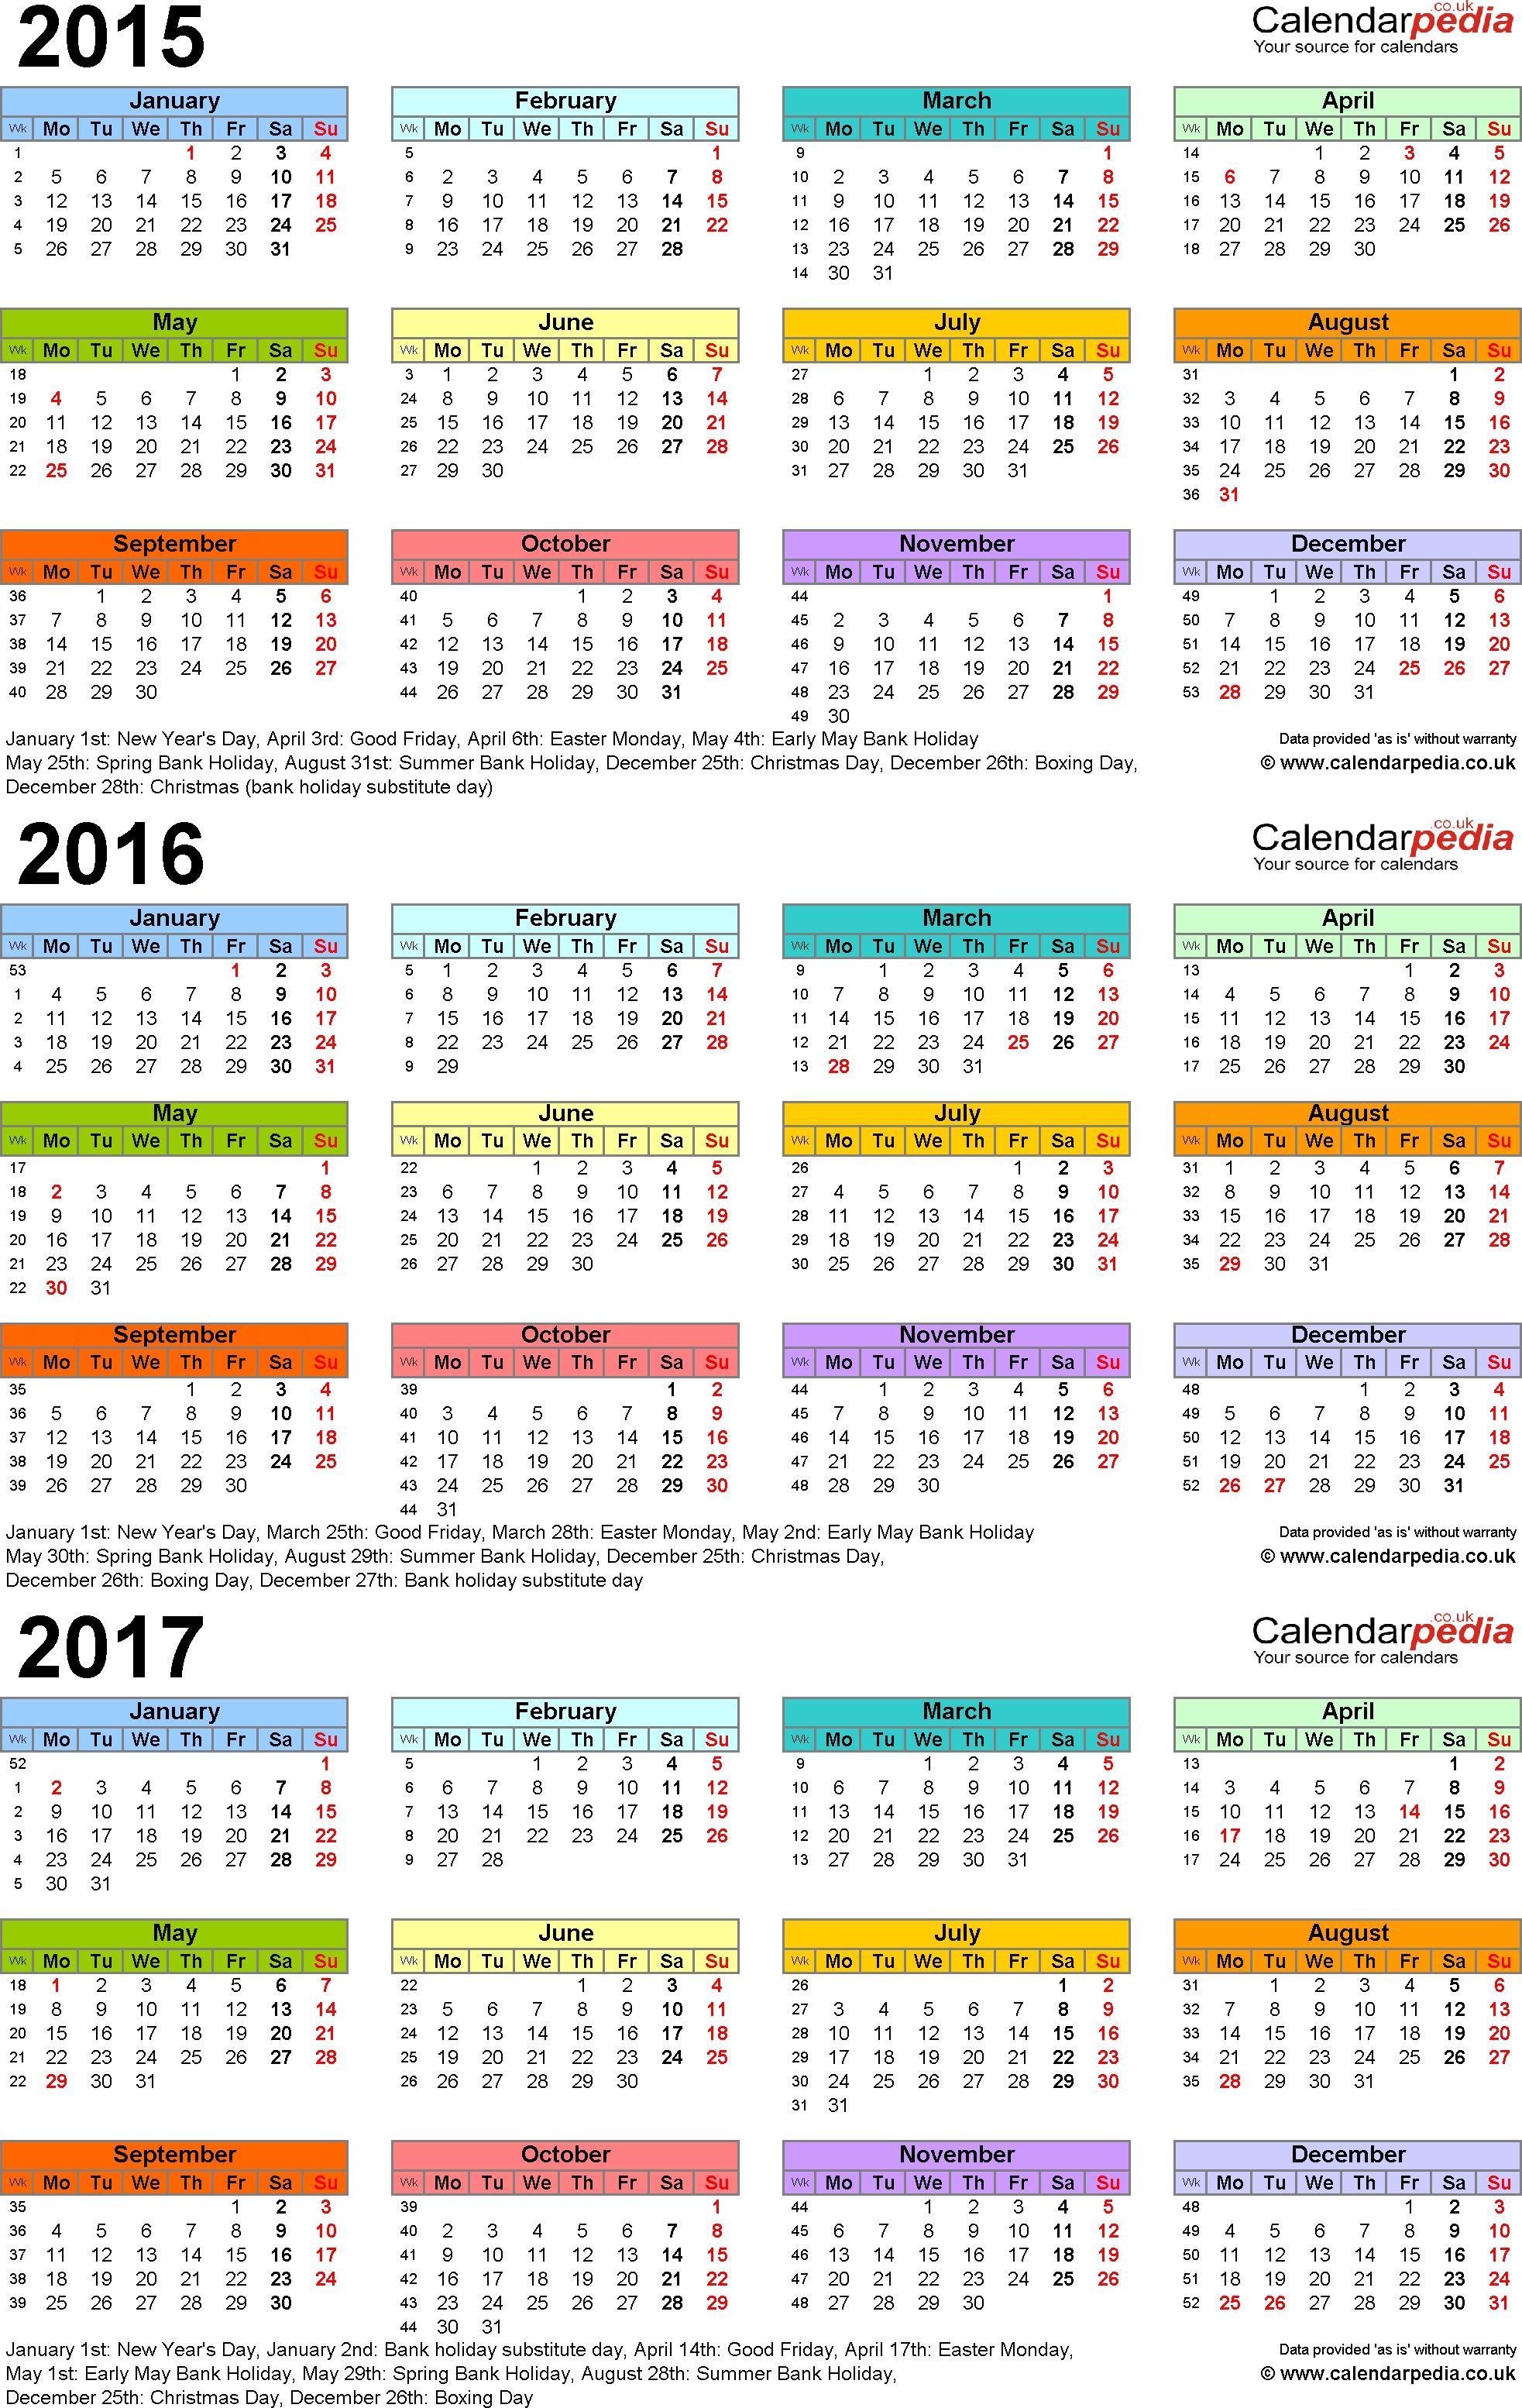 Three Year Calendars For 2015 2016 2017 Uk For Pdf  Xjb